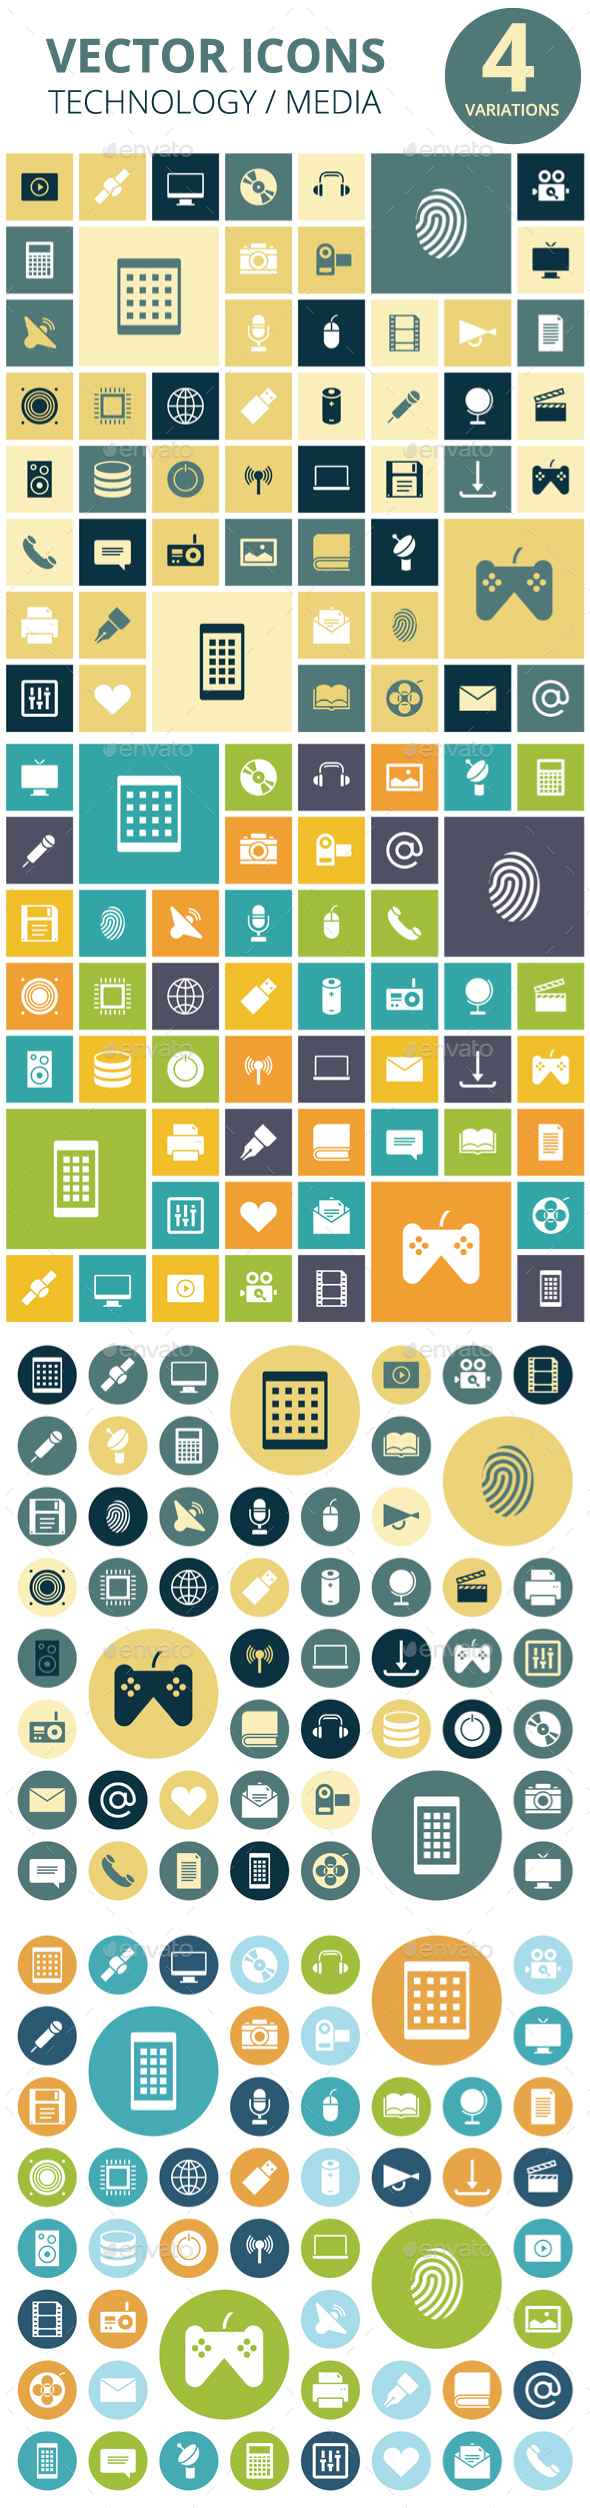 Flat Design Icons for Technology and Media